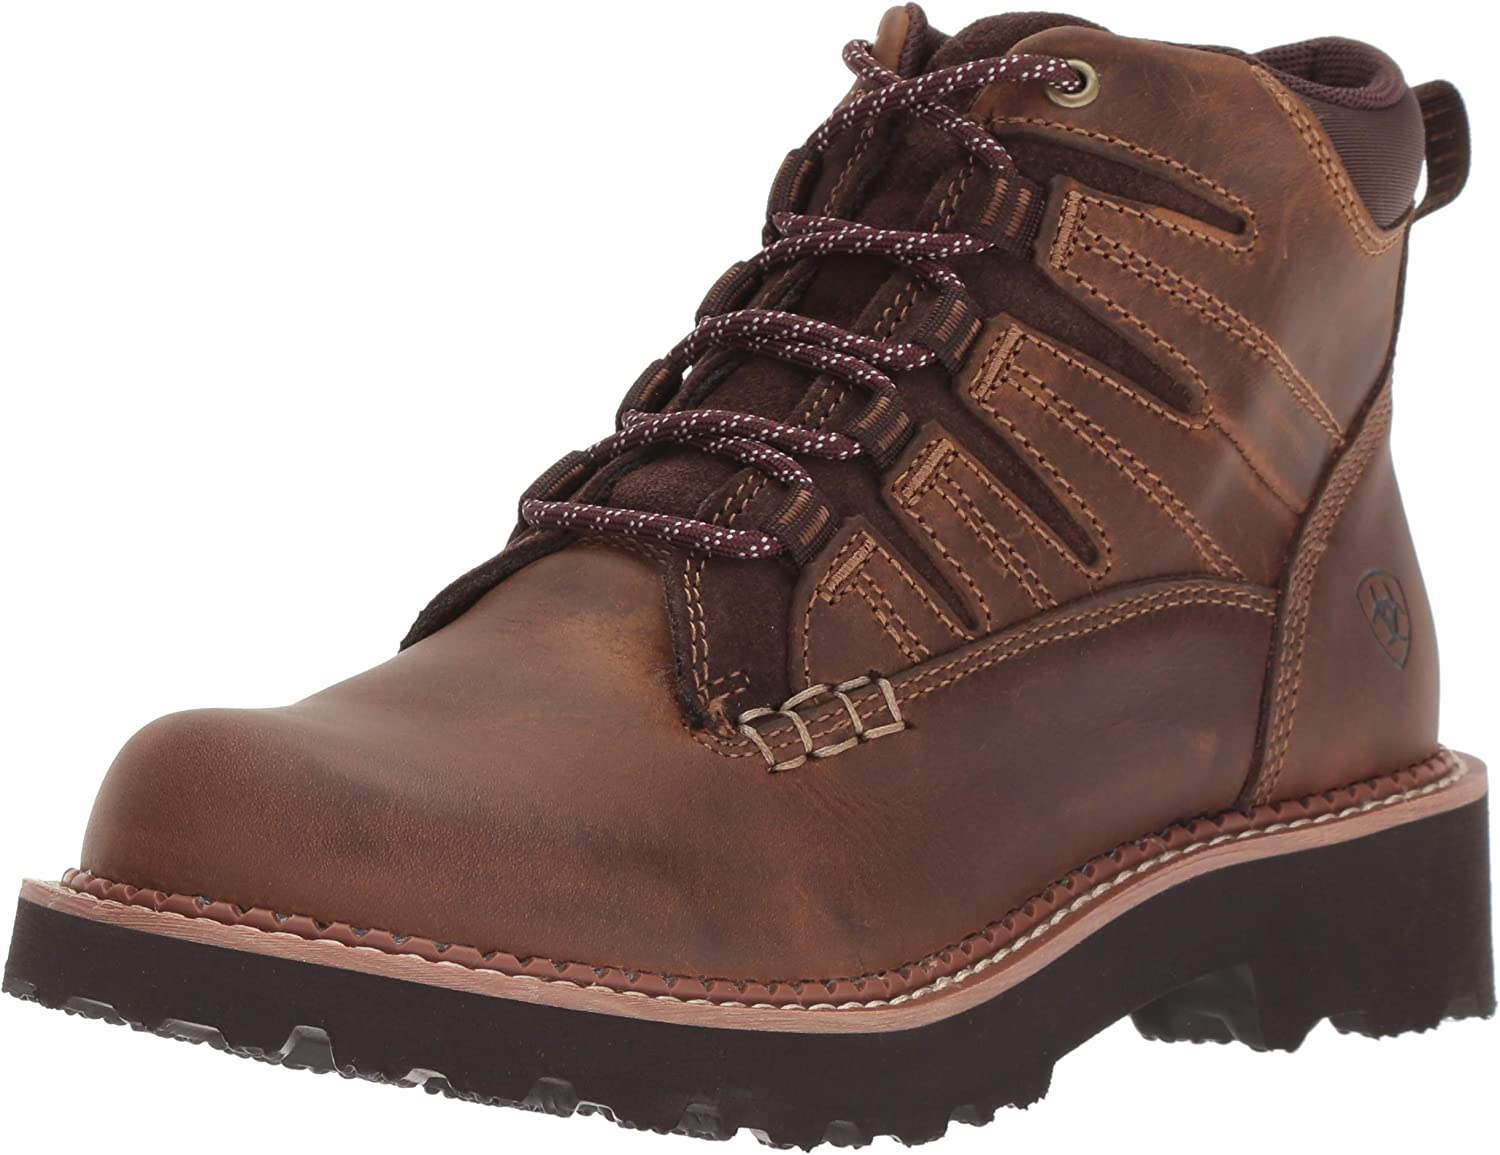 Ariat Canyon II Boots - Women's Round Toe Lace-Up Casual Boot